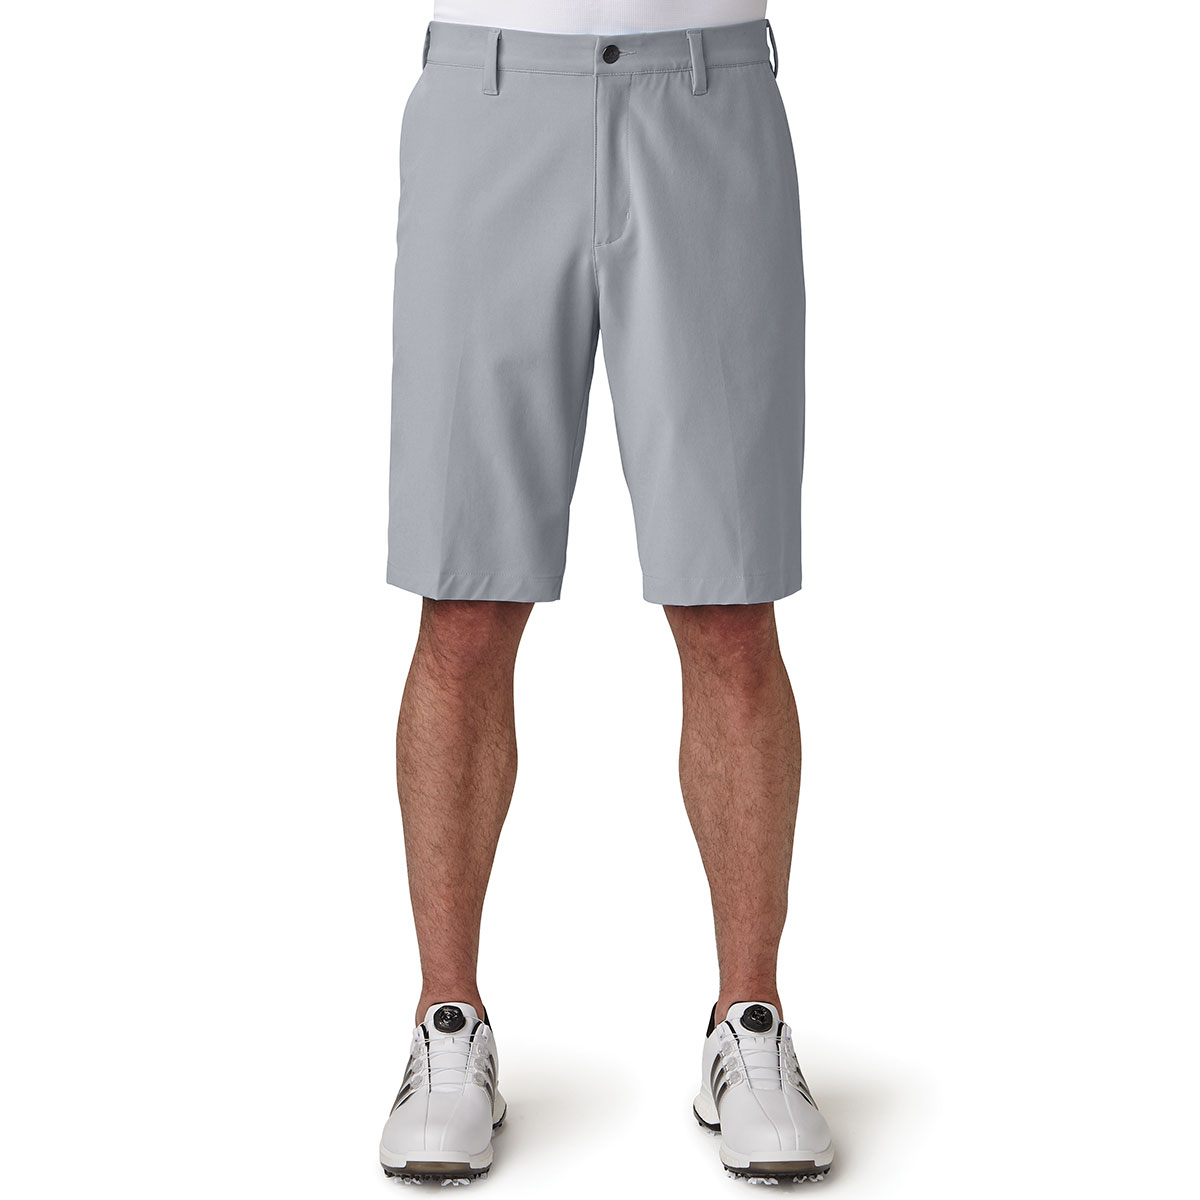 Adidas Golf 2017 Mens Stretch Ultimate Shorts Breathable Water ...